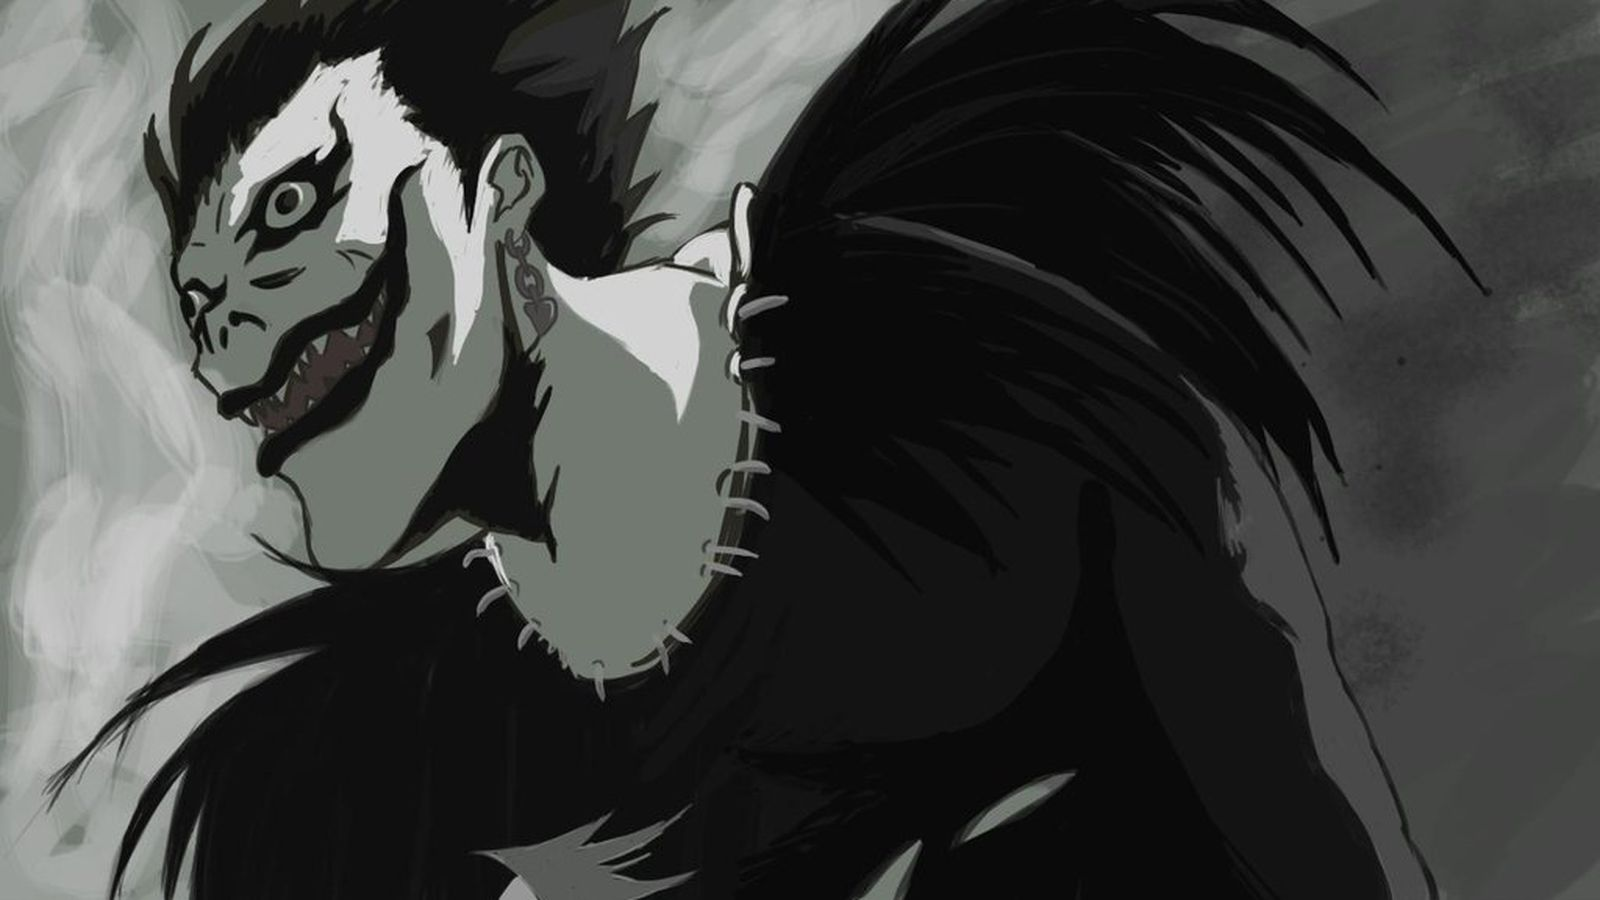 Anime Death Note Wallpaper Willem Dafoe Will Voice Ryuk The Shinigami In Live Action